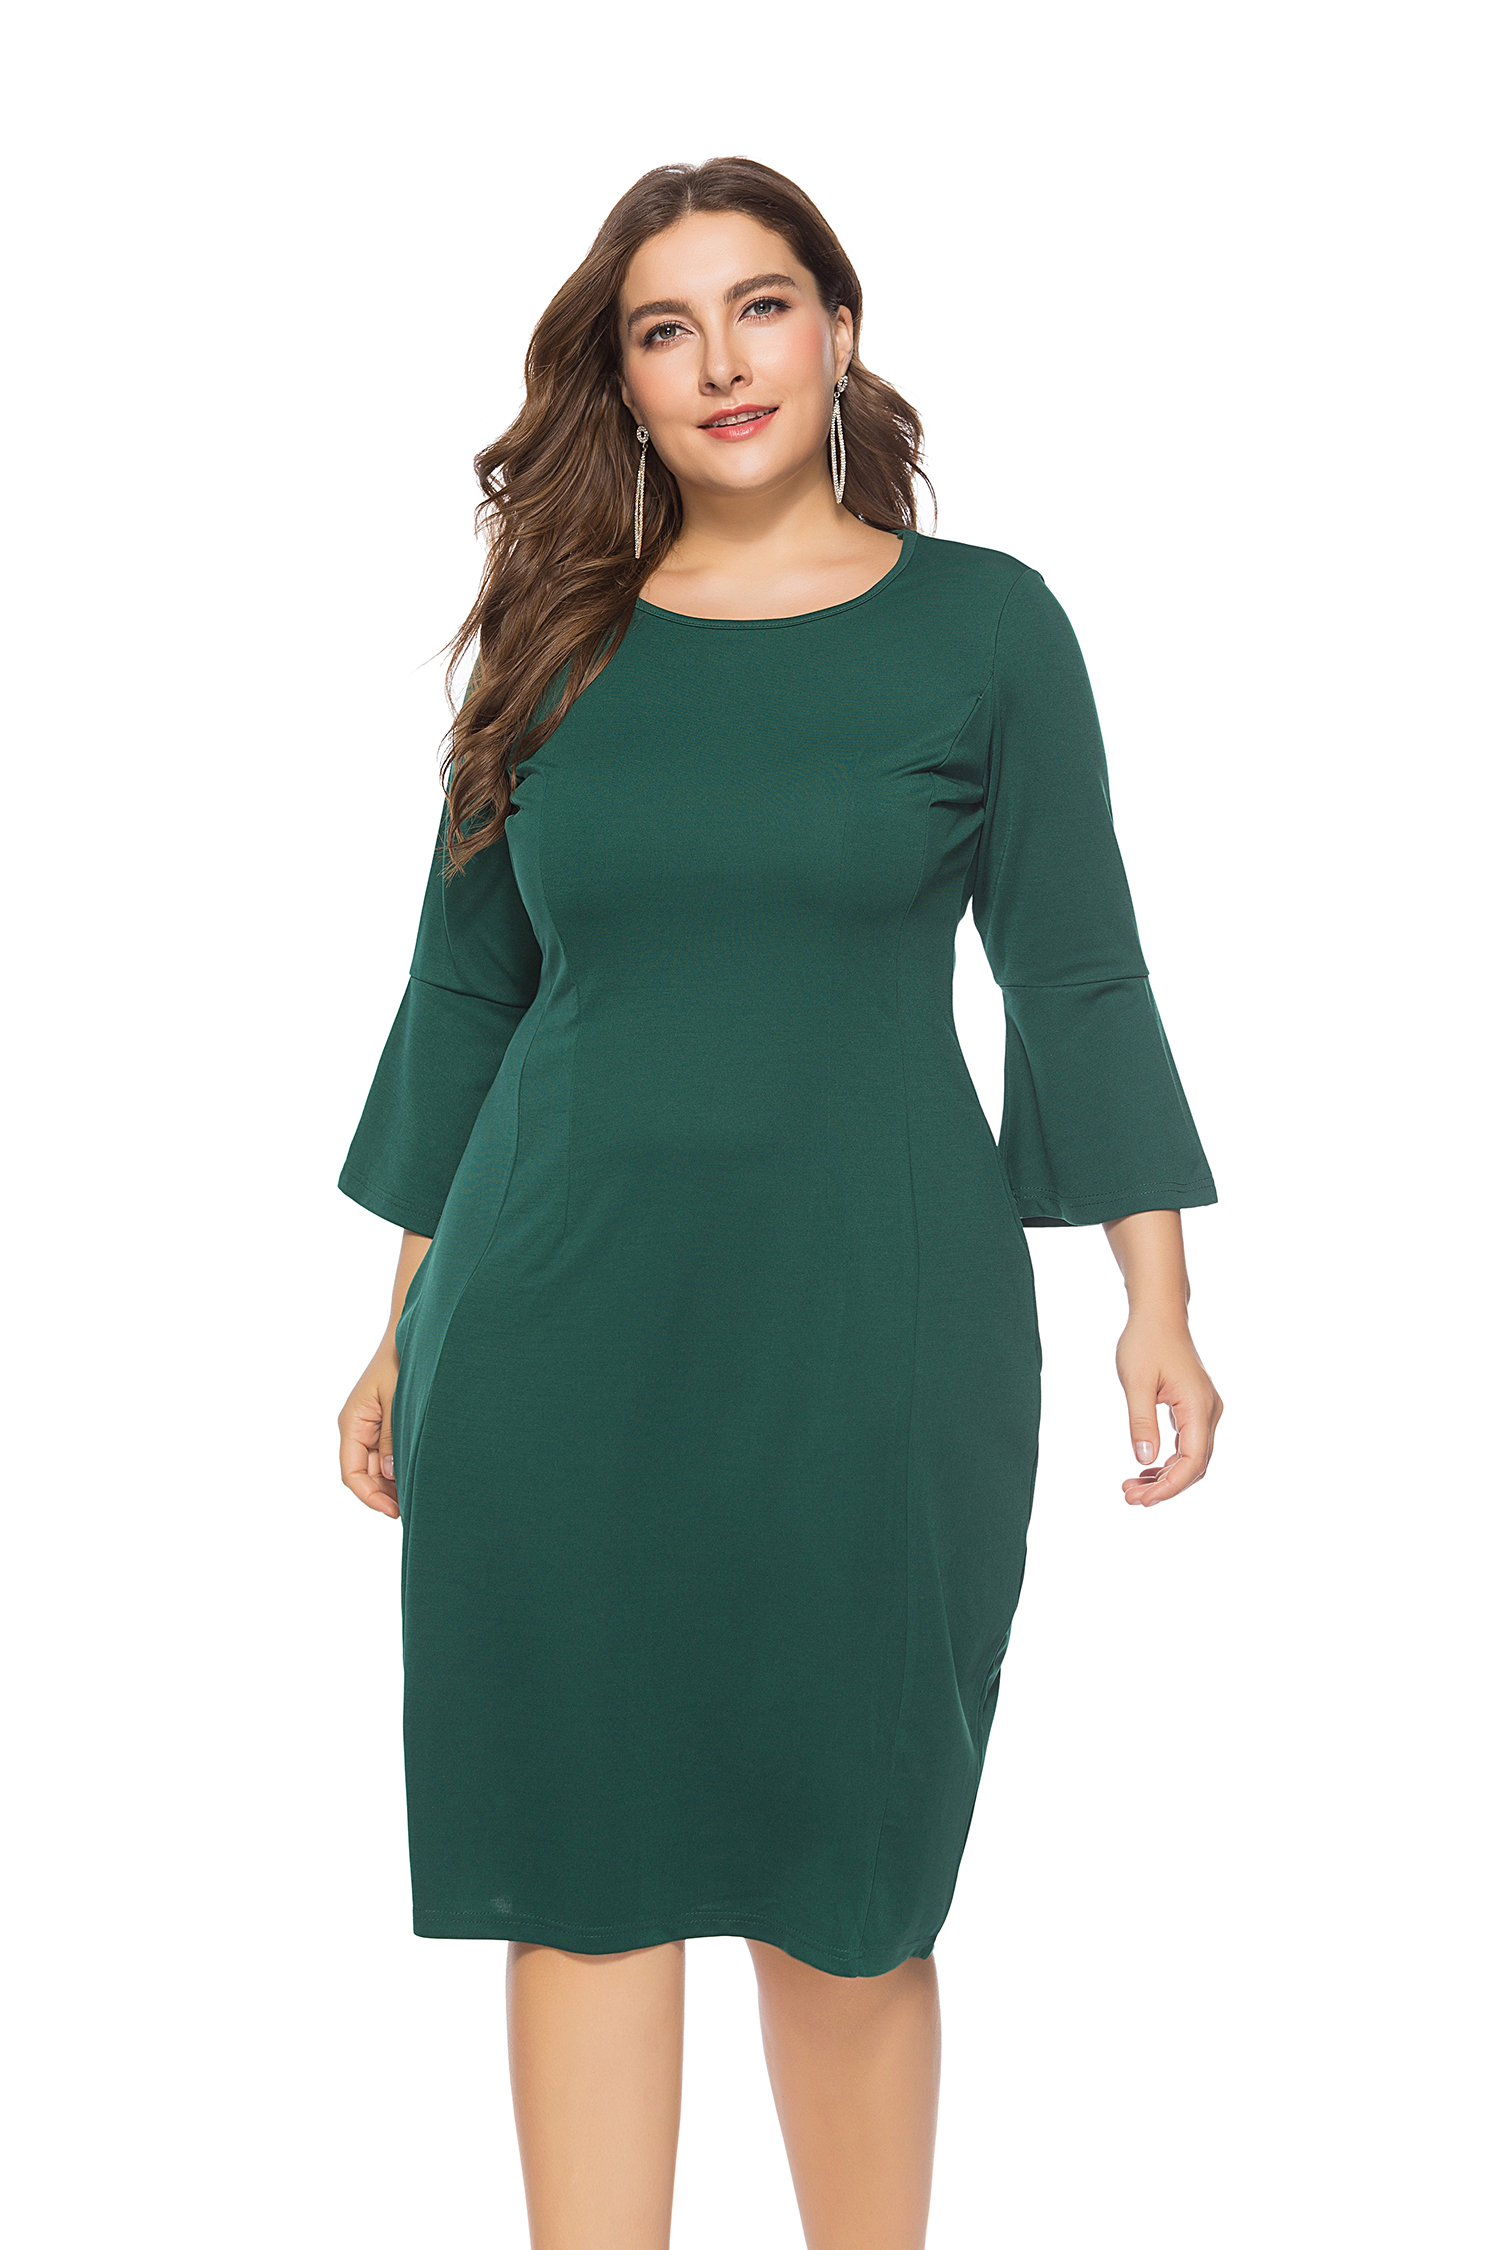 Plus Size Mature Women Dress with 3/4 Sleeves